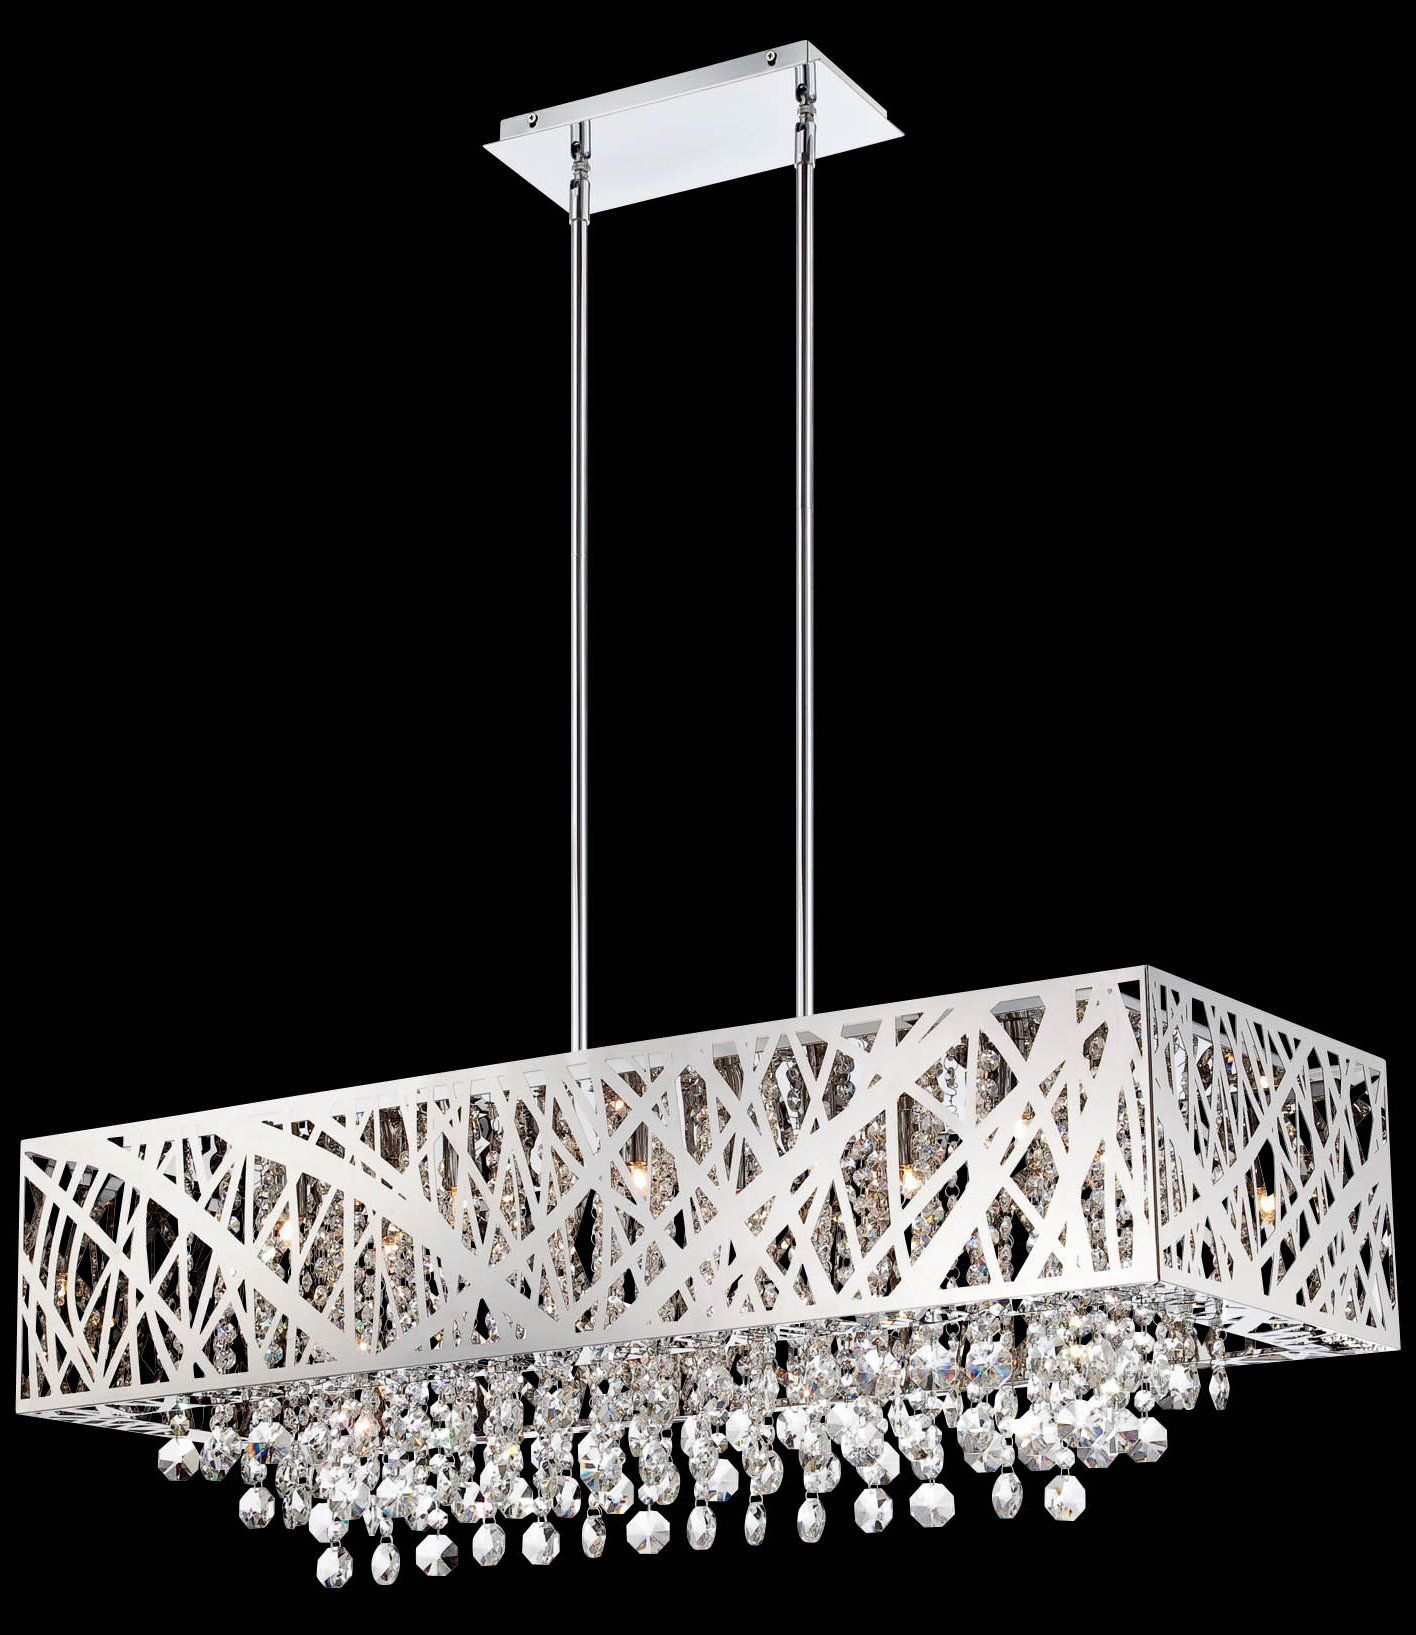 South shore decorating lite source el 10104 benedetta for Rectangular dining room light